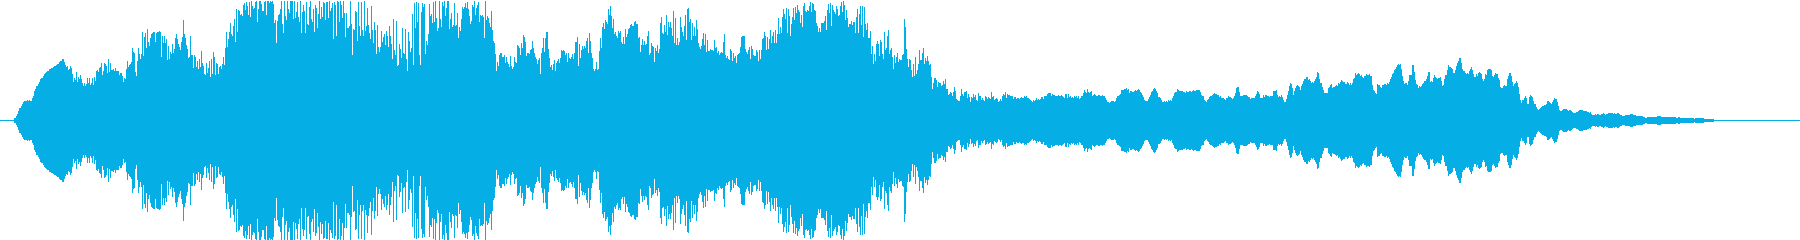 Powerful and simple violin solo's reproduced waveform